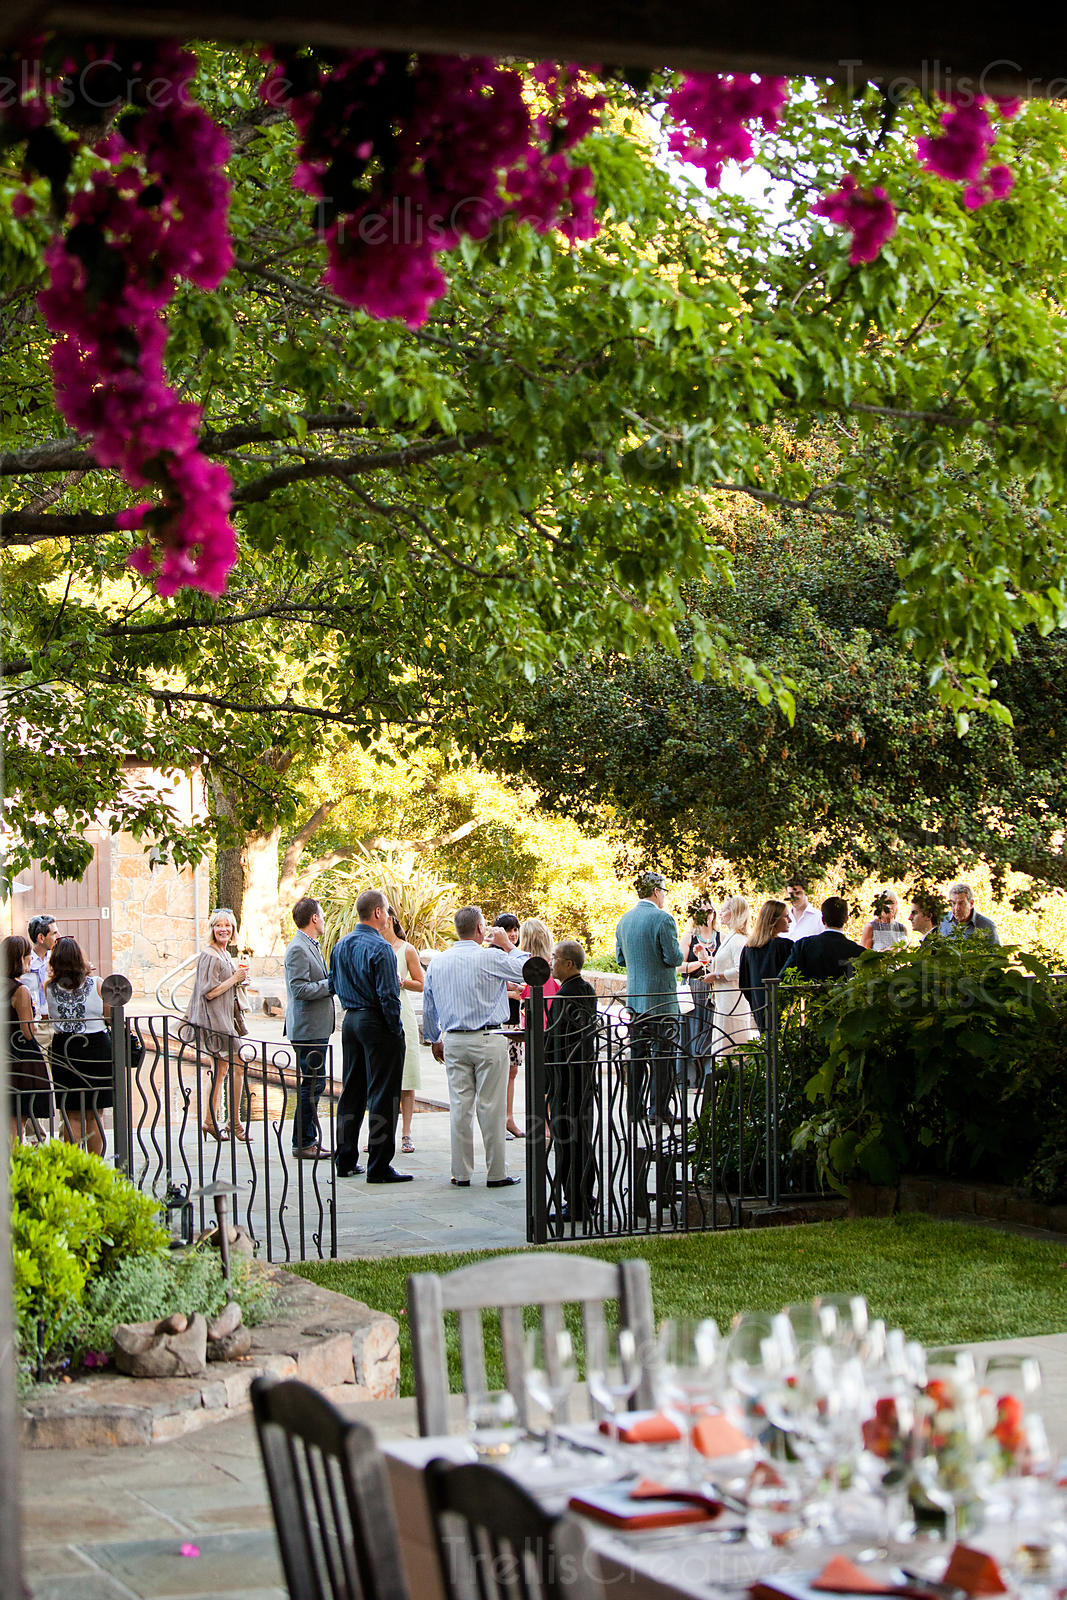 Selective focus view of party at outdoor wedding under lush trees in garden